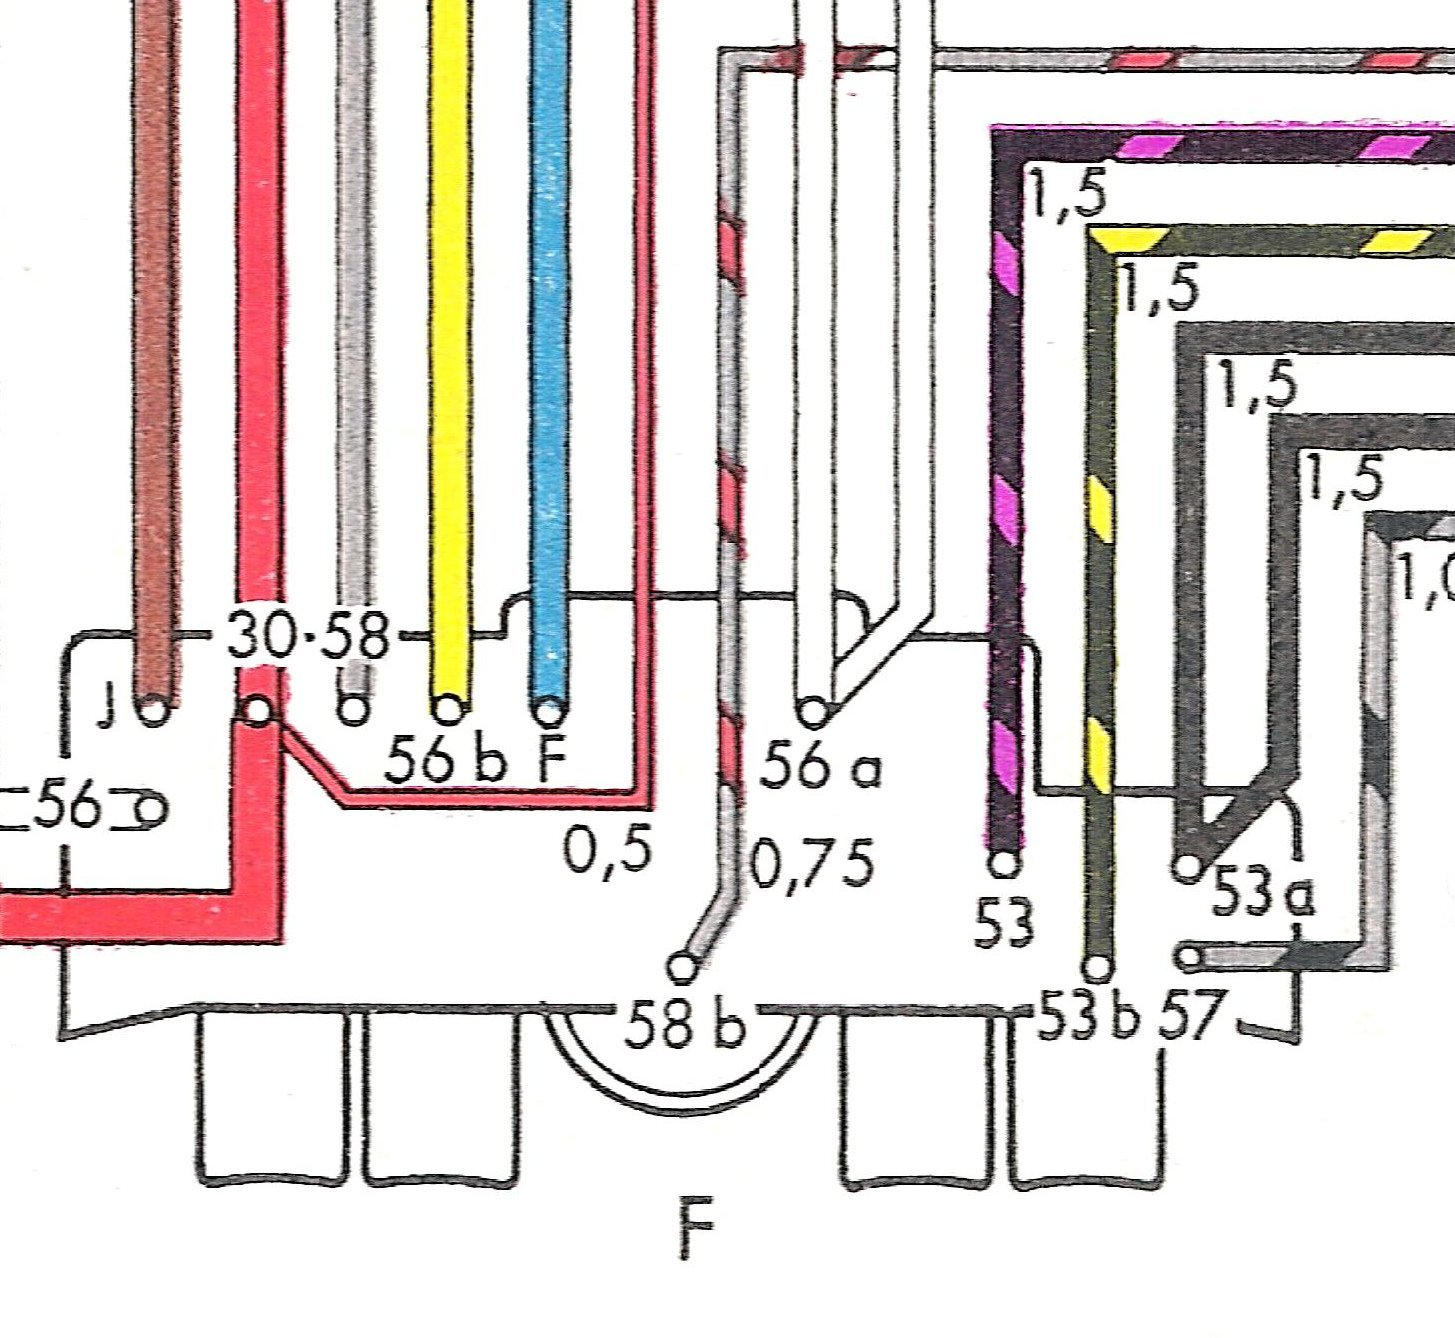 Type 3 Wiring Diagrams Push On Ignition Switch Diagram Key Button Dash Please Right Click To Save As The Above